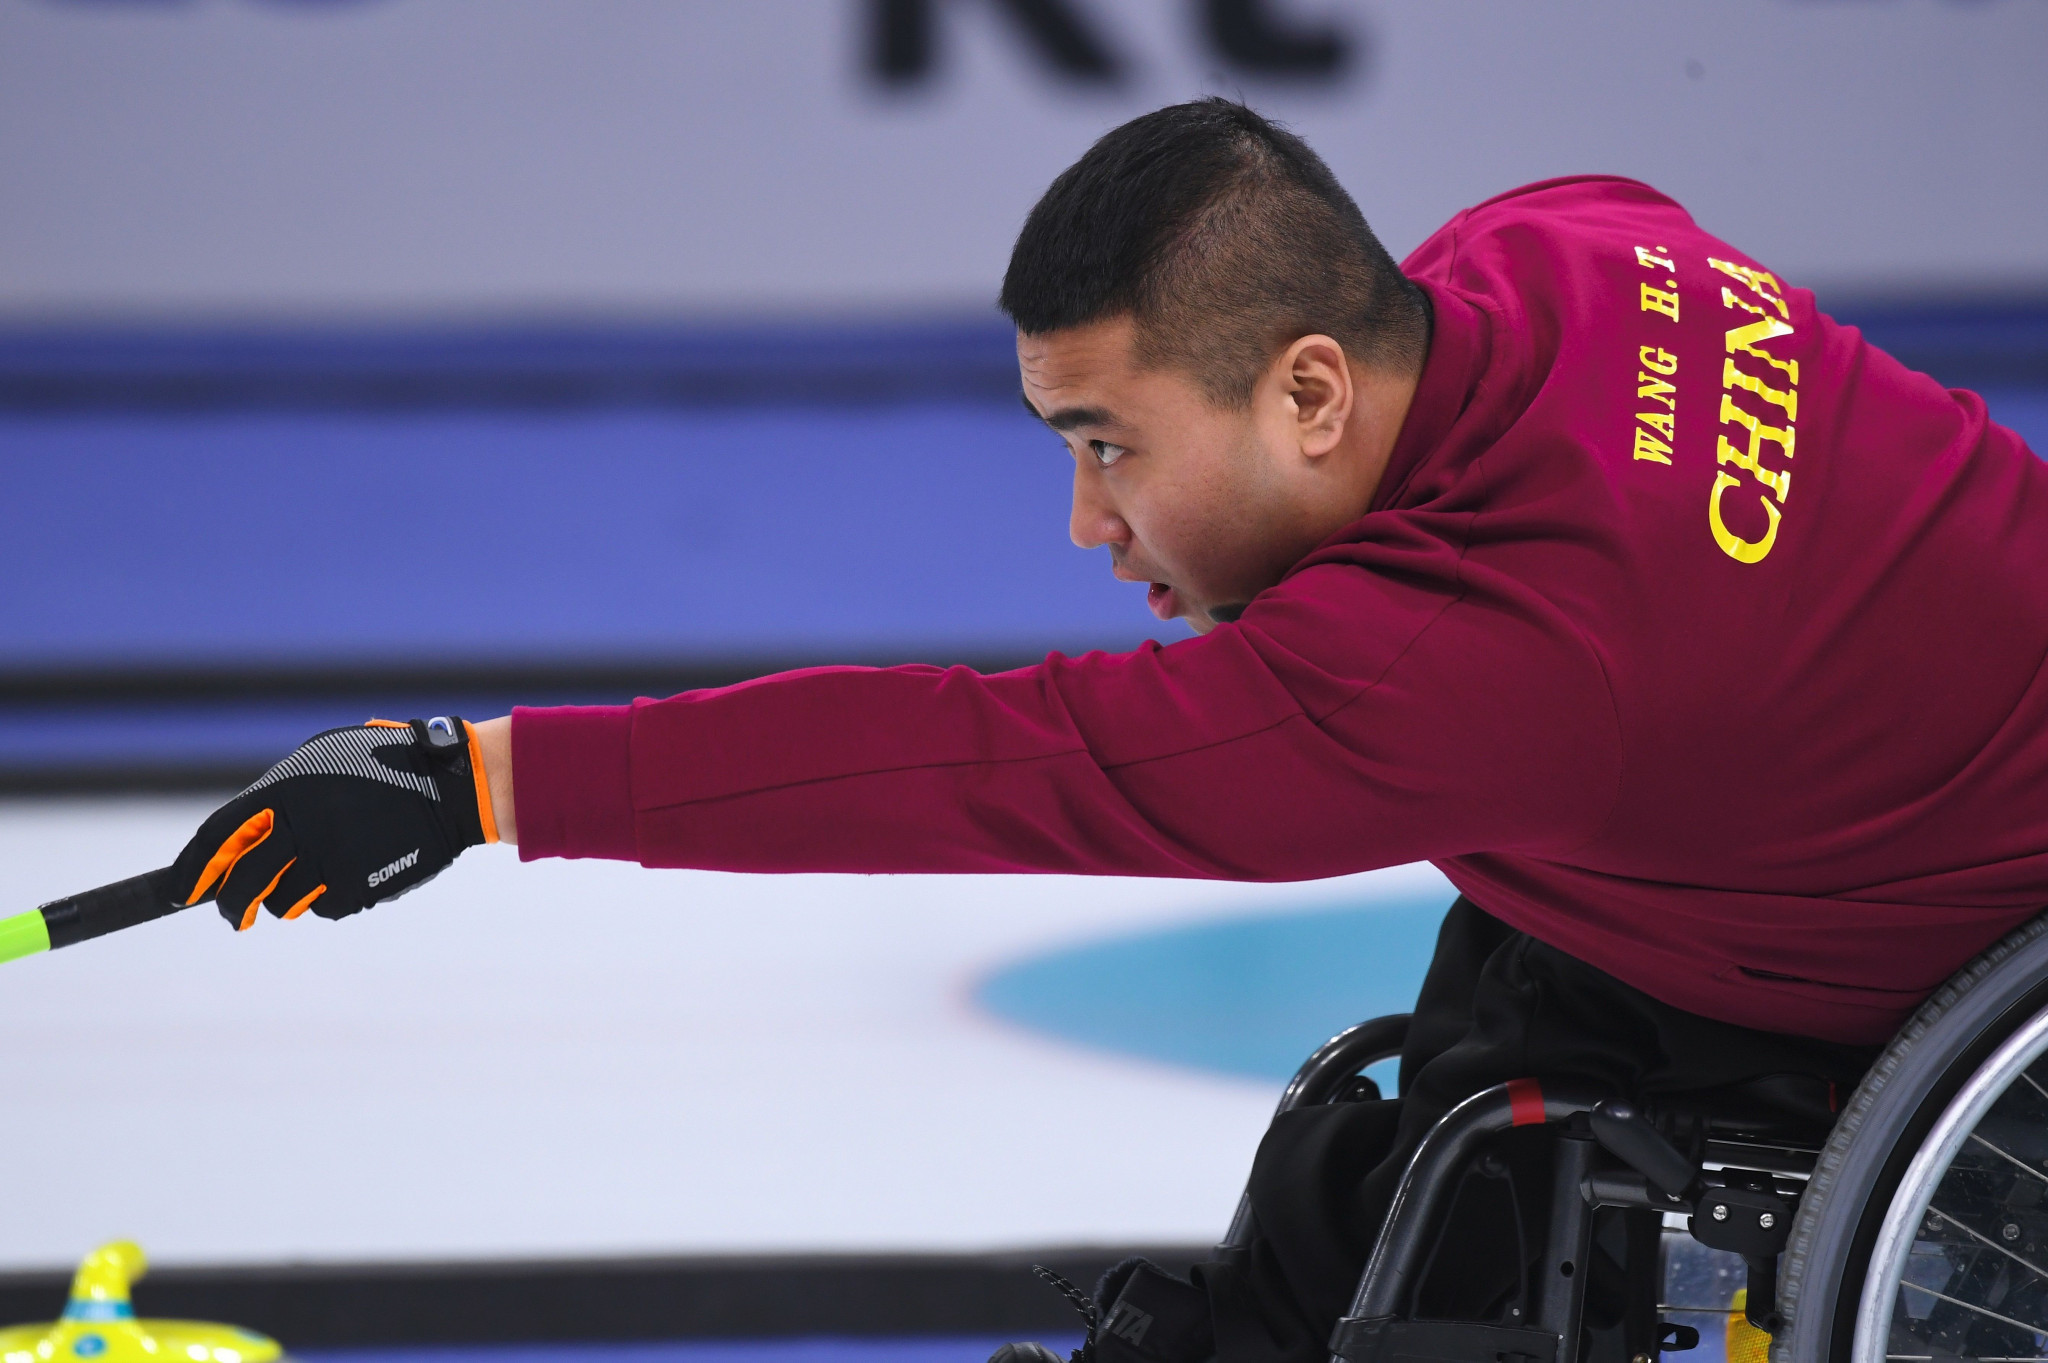 Haitao Wang was instrumental in China's victory at the Gangneung Curling Centre today ©Getty Images